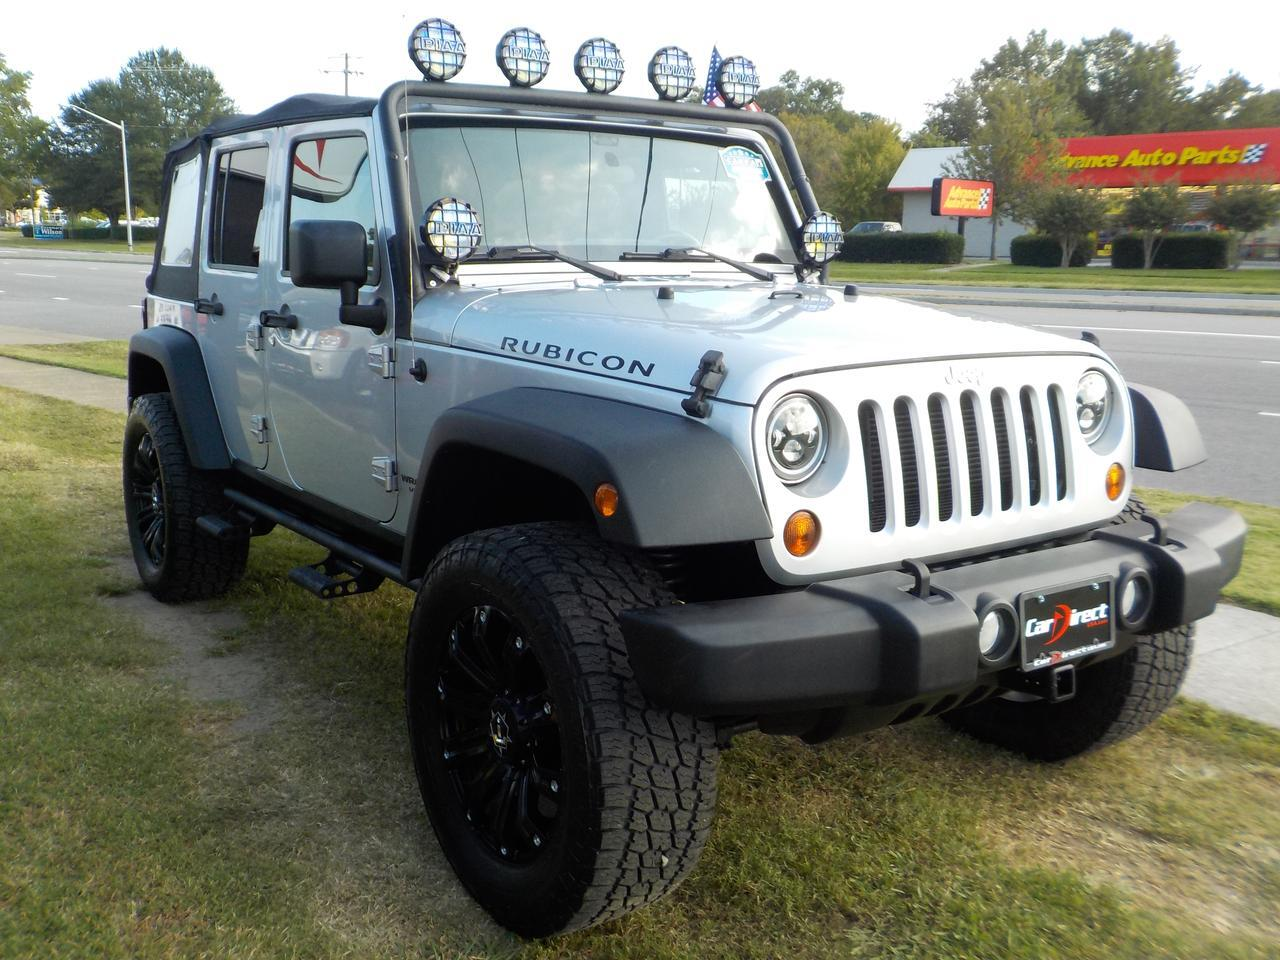 2012 JEEP WRANGLER RUBICON UNLIMITED 4X4, ONE OWNER, NAVIGATION, REMOTE START, TOW! Virginia Beach VA